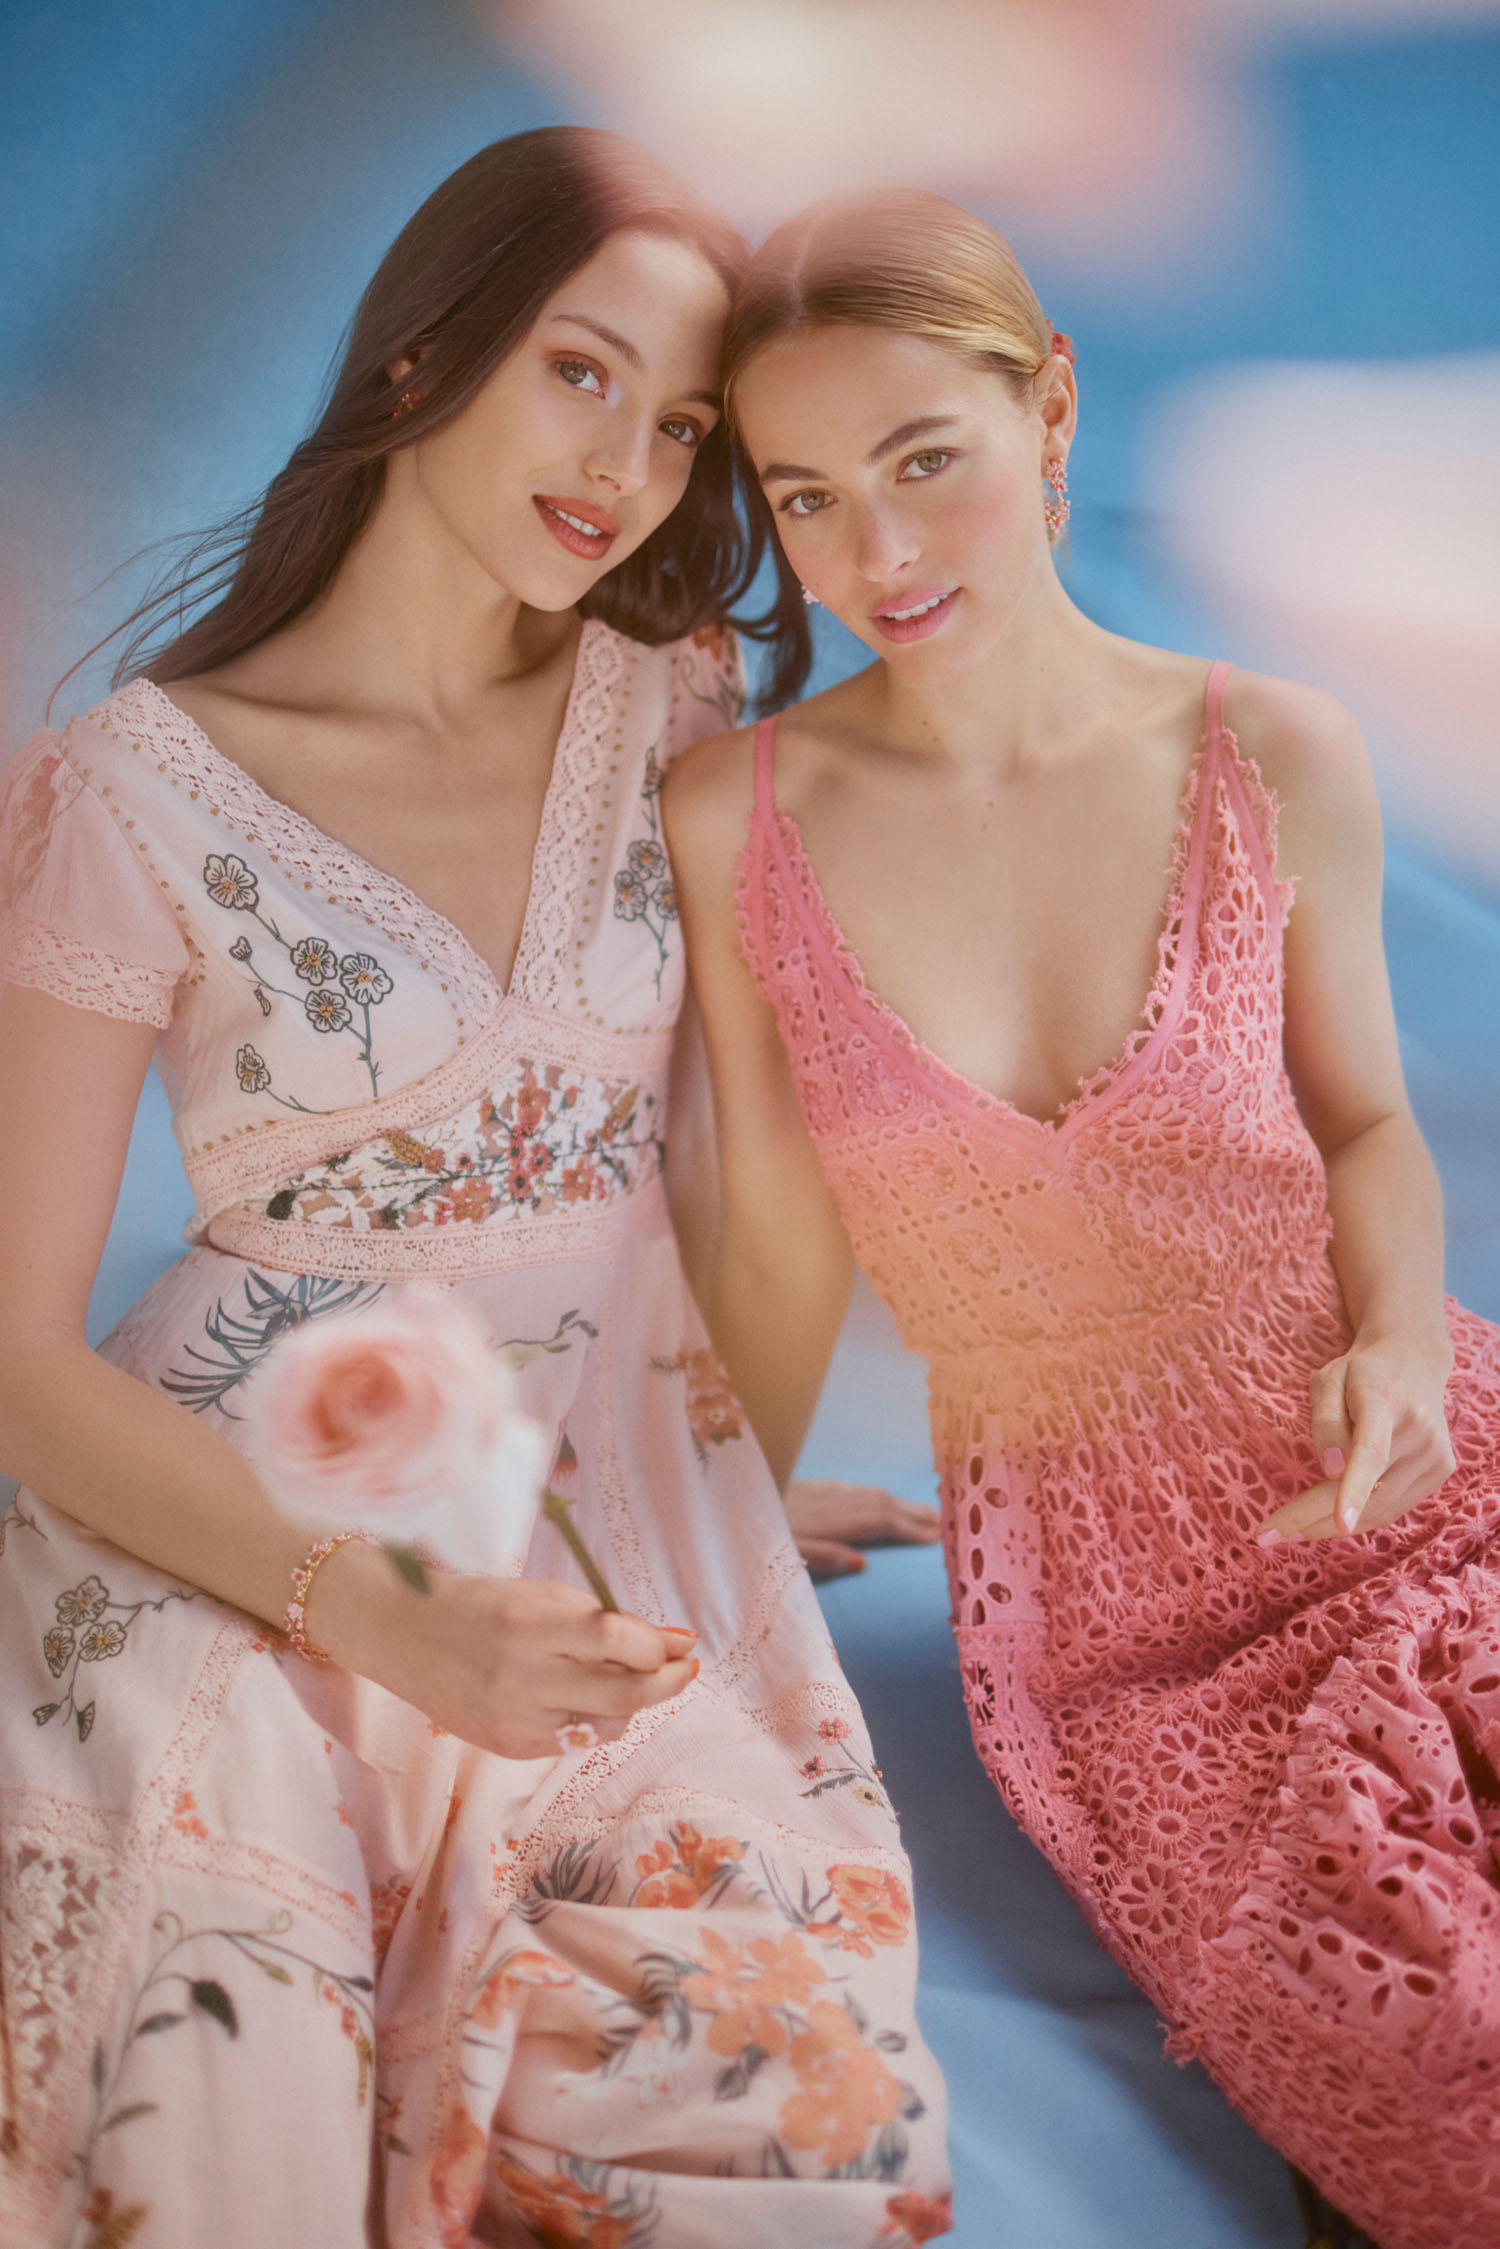 BHLDN x Free People Capsule Collection pink bridesmaids